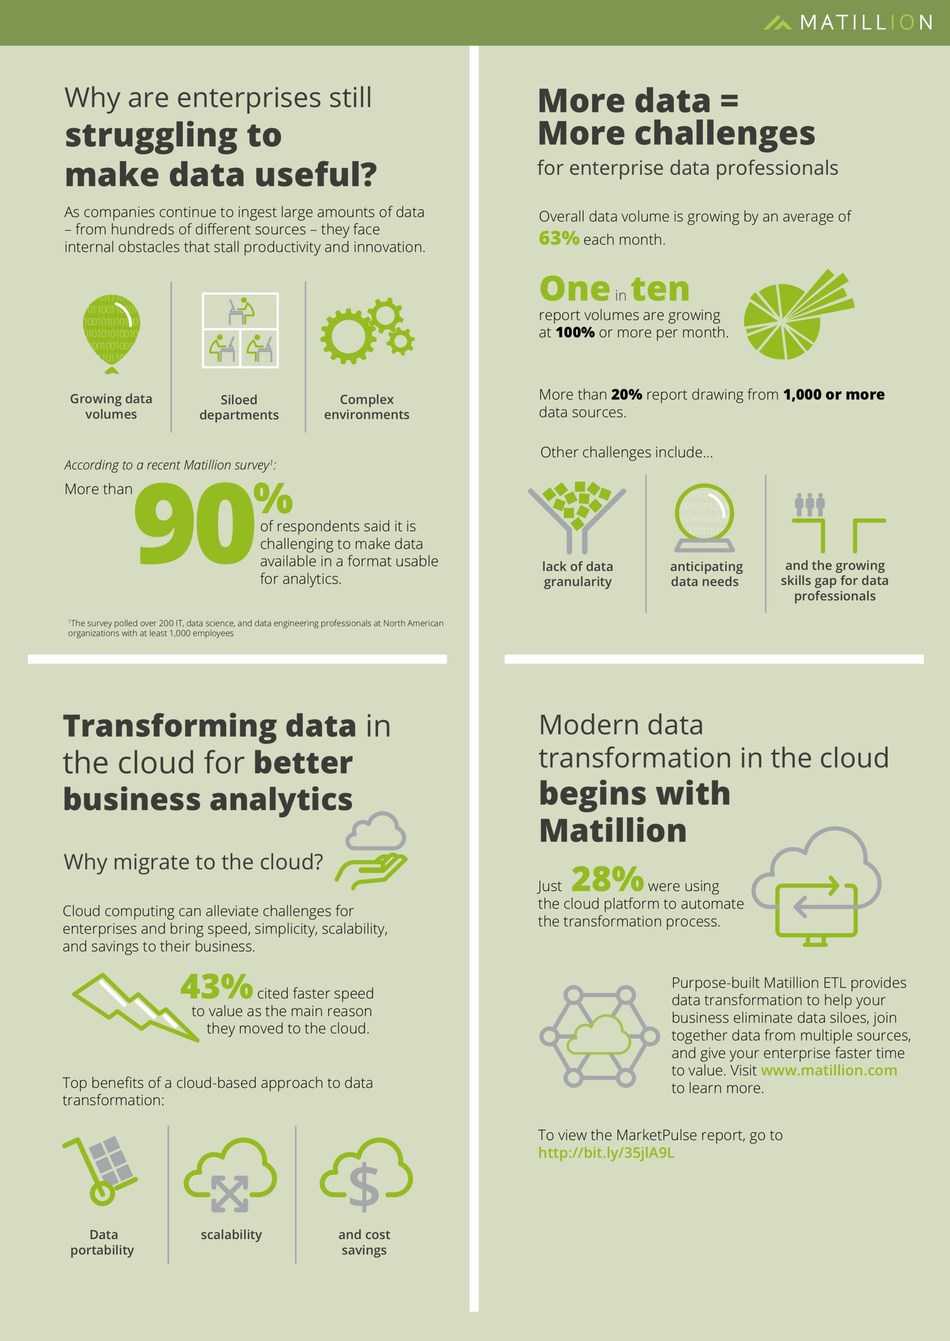 A MarketPulse survey by Matillion and IDG Research finds more than 90% of enterprises find it challenging to make data available in a format usable for analytics